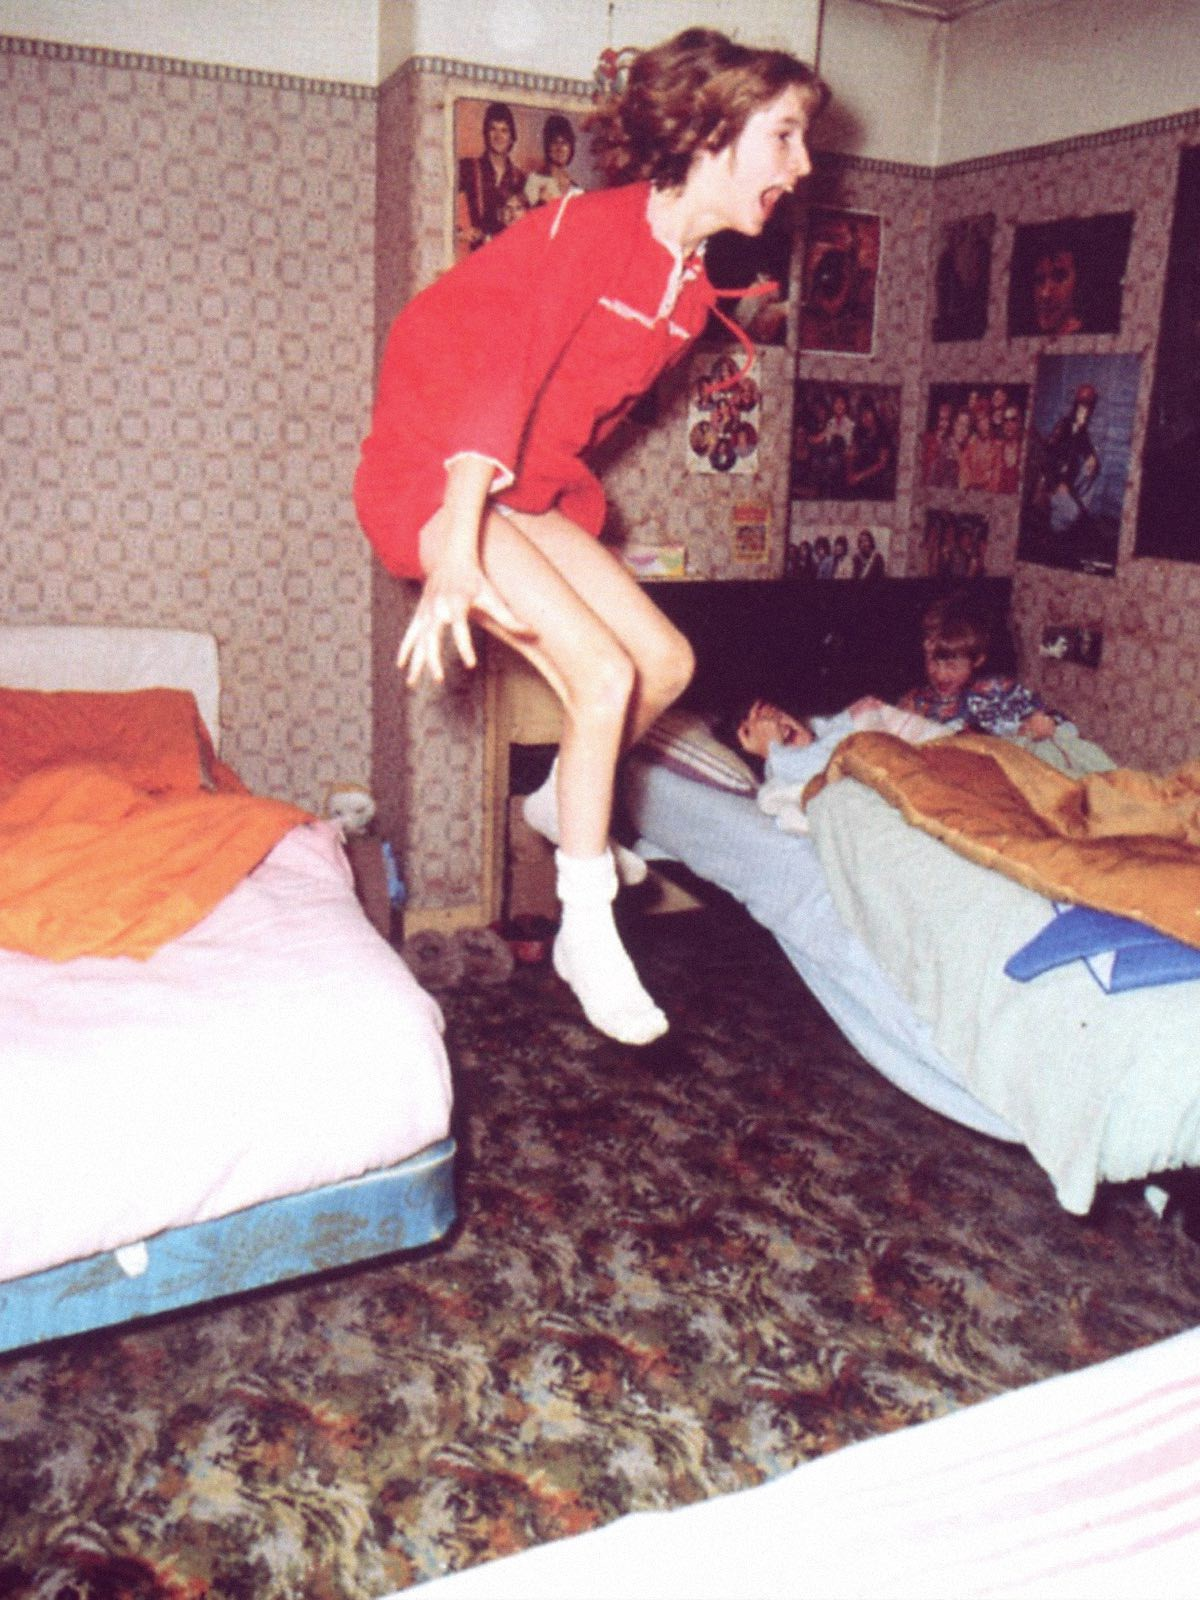 The famous photo of Janet flying off her bed